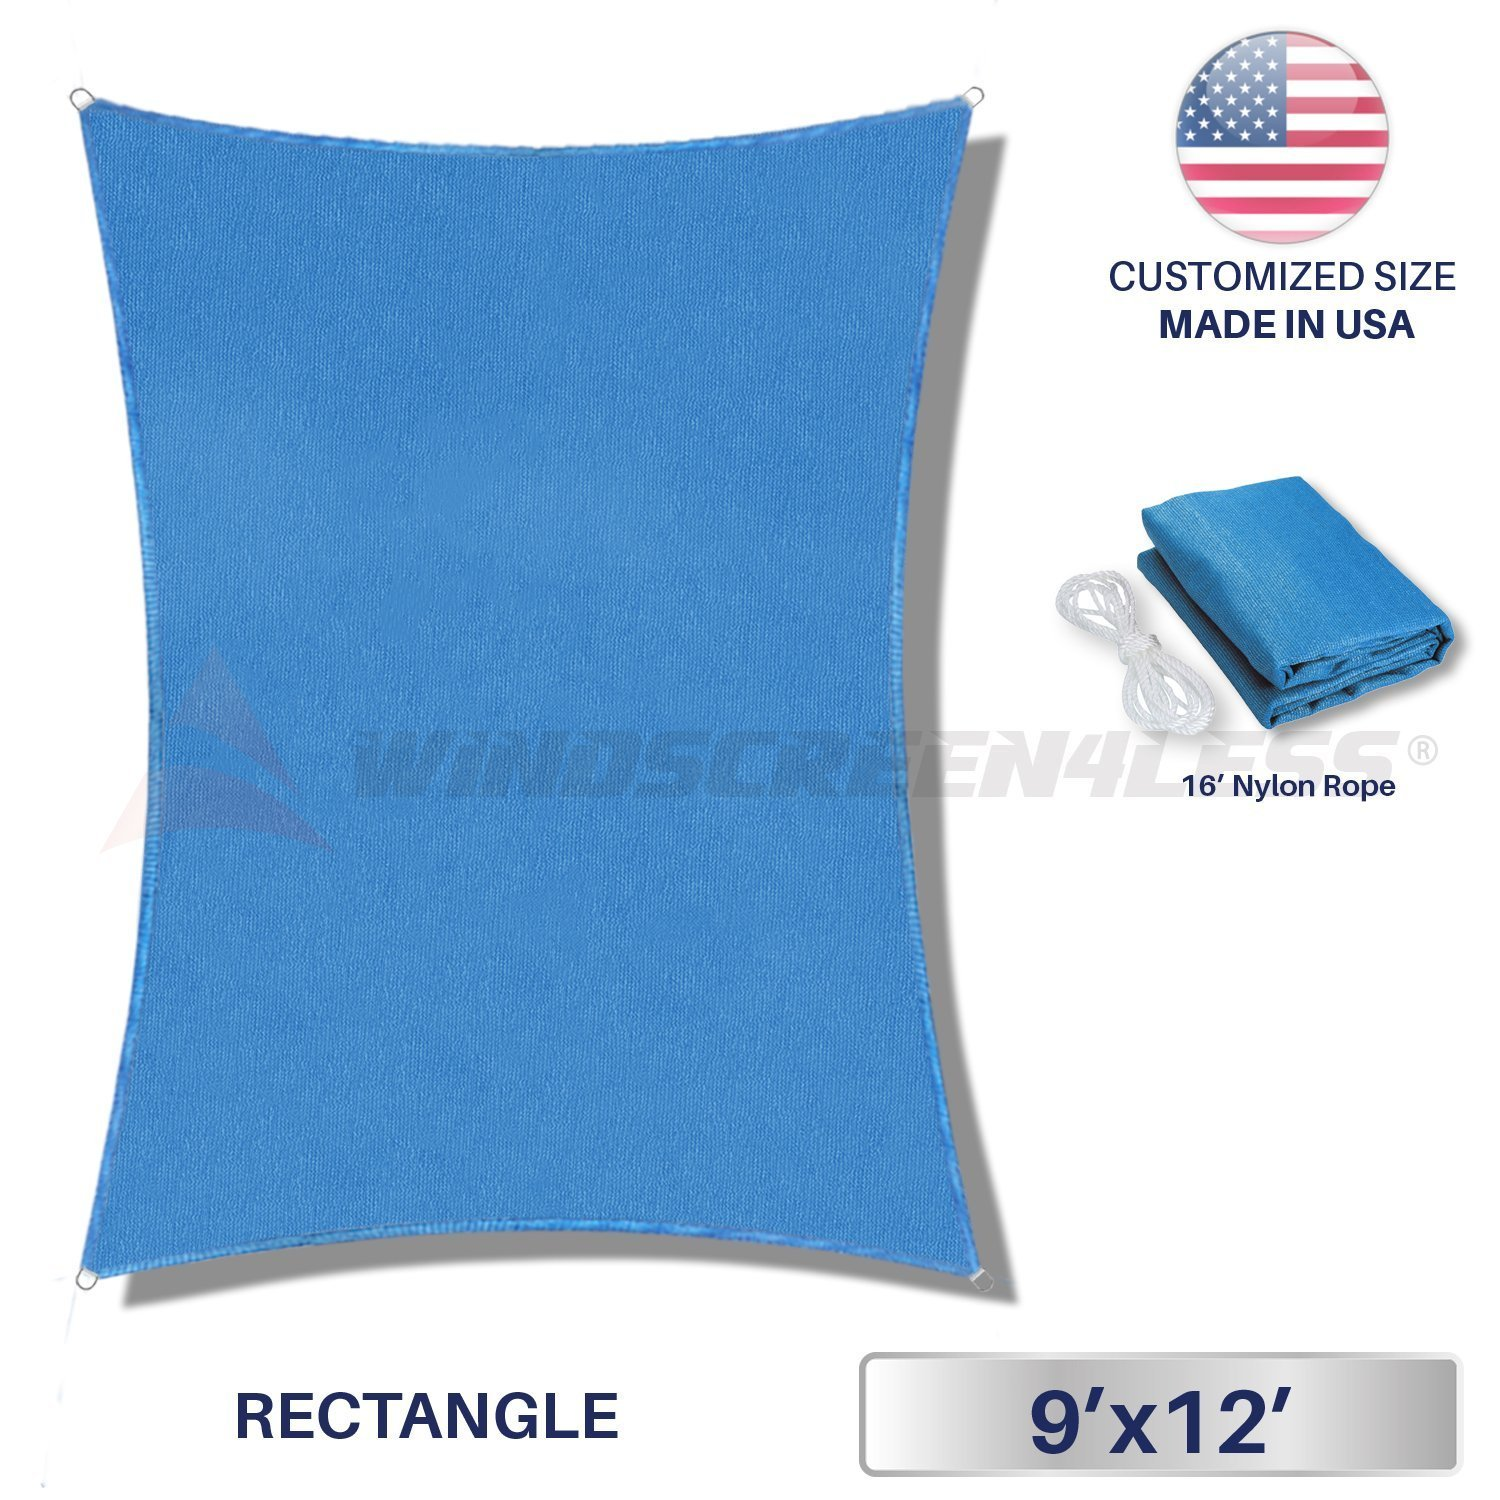 Windscreen4less Sun Shade Sail Ice Blue 9' x 12' Rectangle Patio Permeable Fabric UV Block Perfect for Outdoor Patio Backyard - Customize (4 Pad Eyes Included)